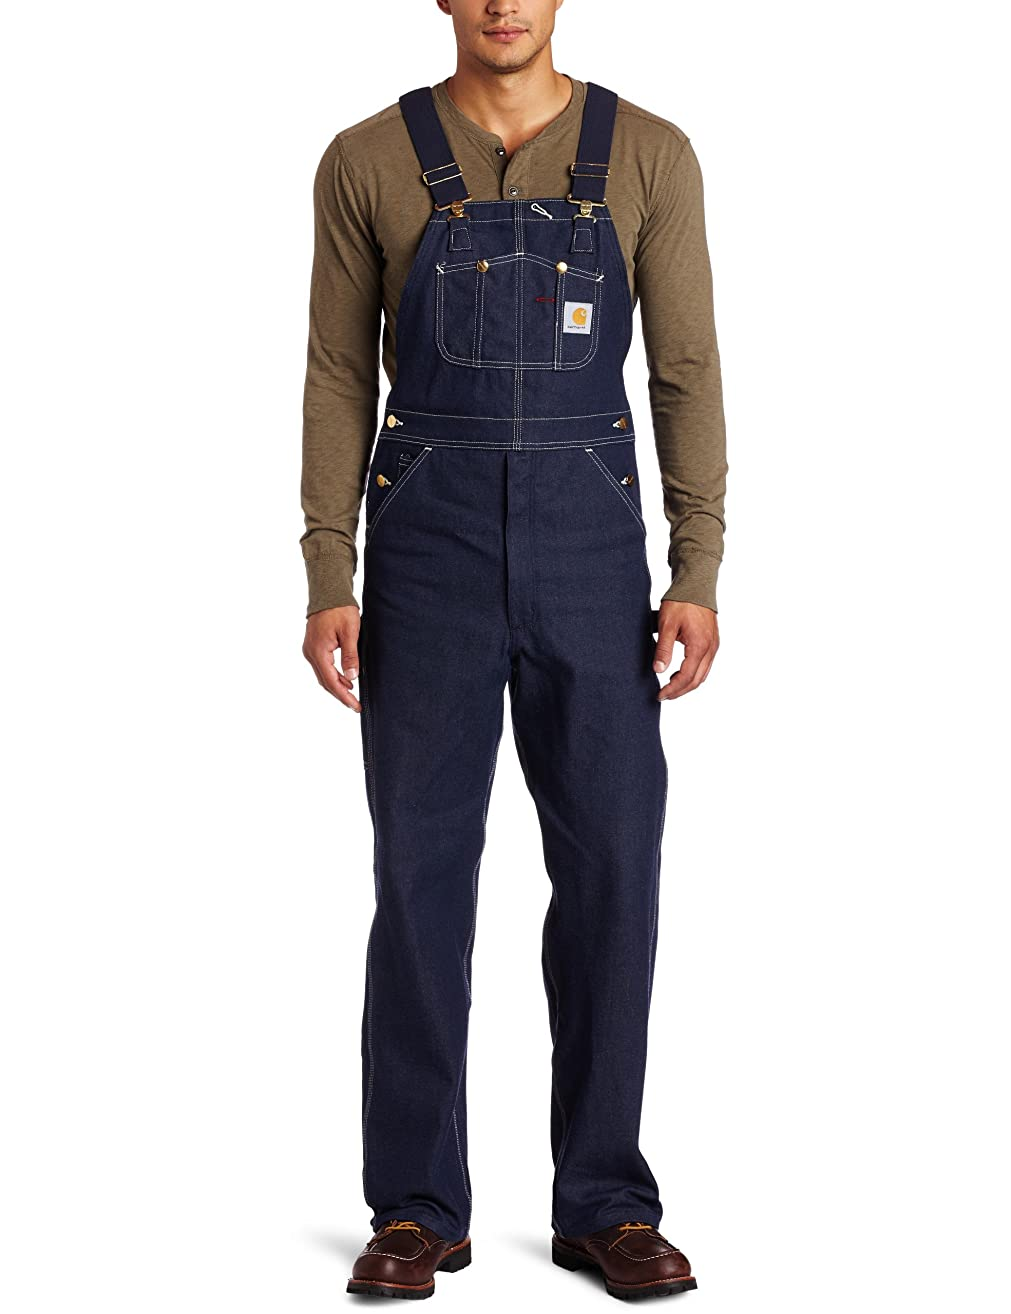 Carhartt Men's Denim Unlined Bib Overall R08